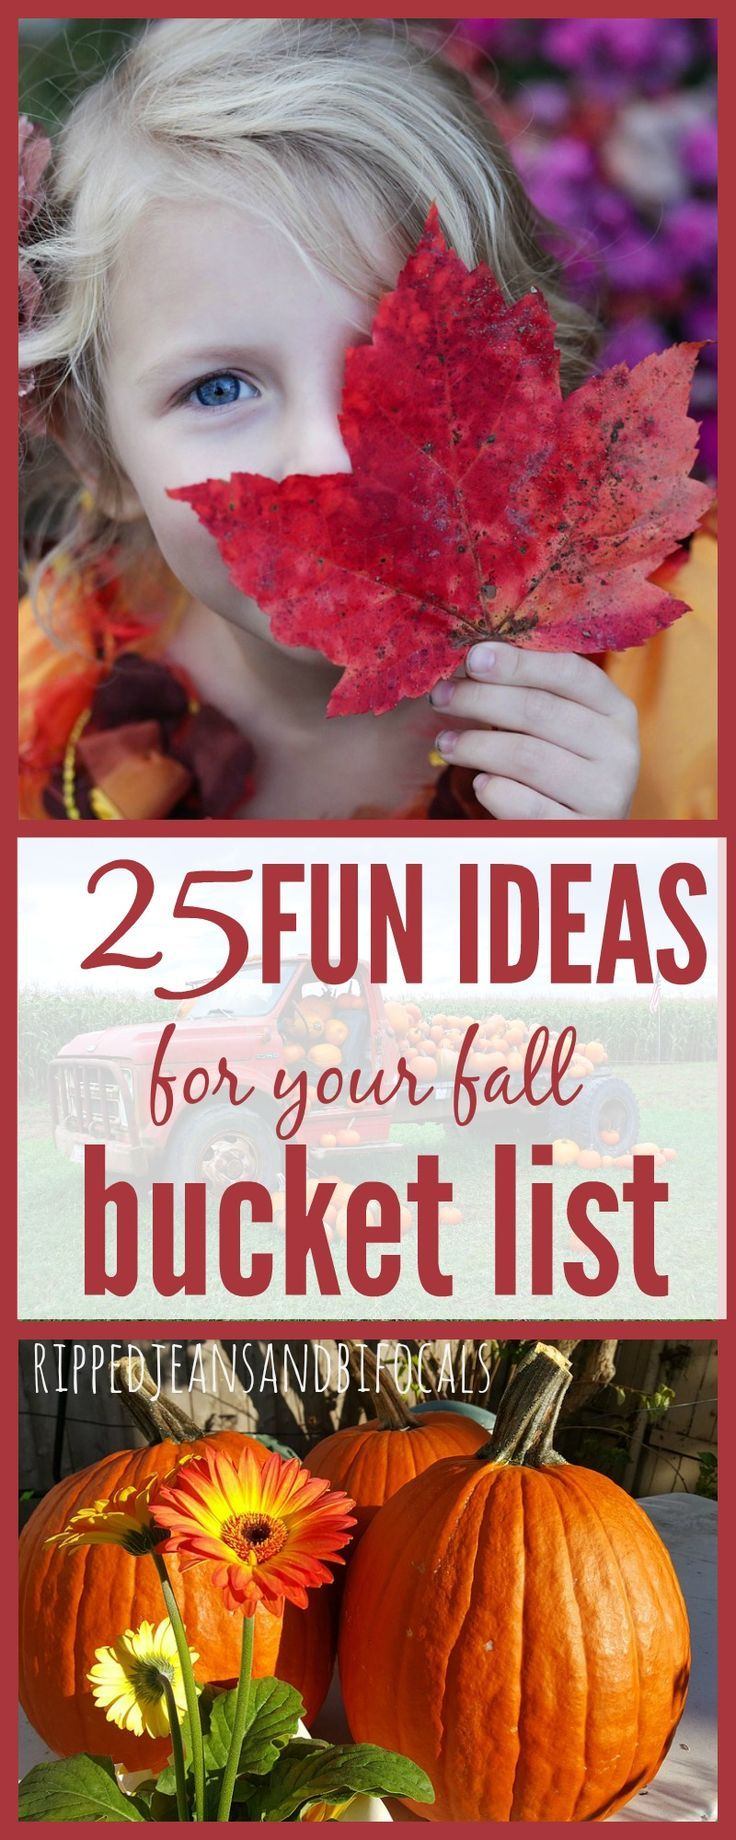 Fall Family Bucket List|Ripped Jeans and Bifocals  Bucket lists|fall bucket lists|activities to do with kids in the fall|fall activities for kids|family activities for fall|pumpkin patch locations|corn maze locations|Halloween craft ideas|easy Halloween crafts|fall recipe ideas|fall decorating ideas|